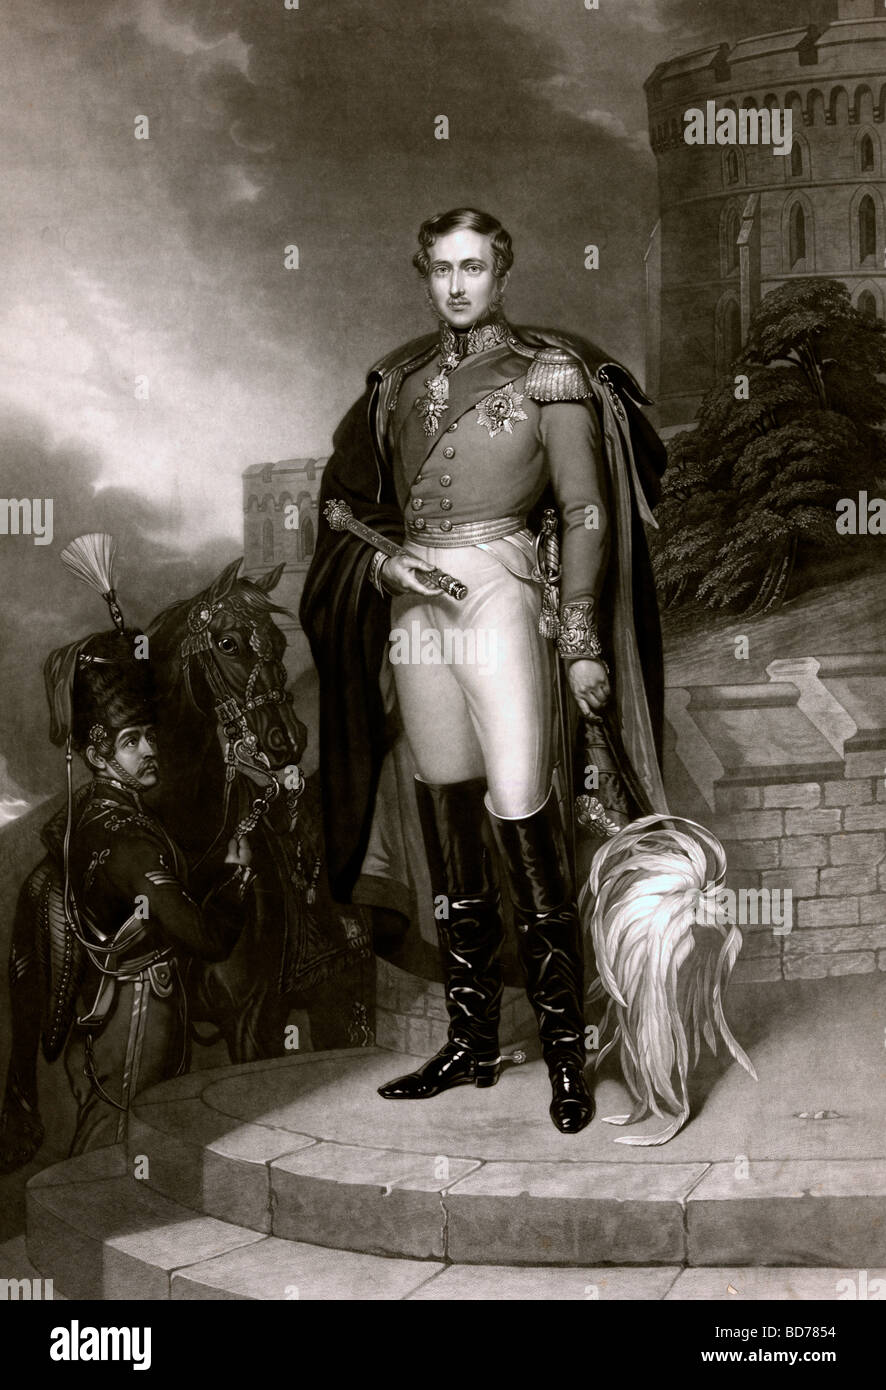 Prince Albert, full-length portrait, standing, facing front, holding scepter and hat. - Stock Image